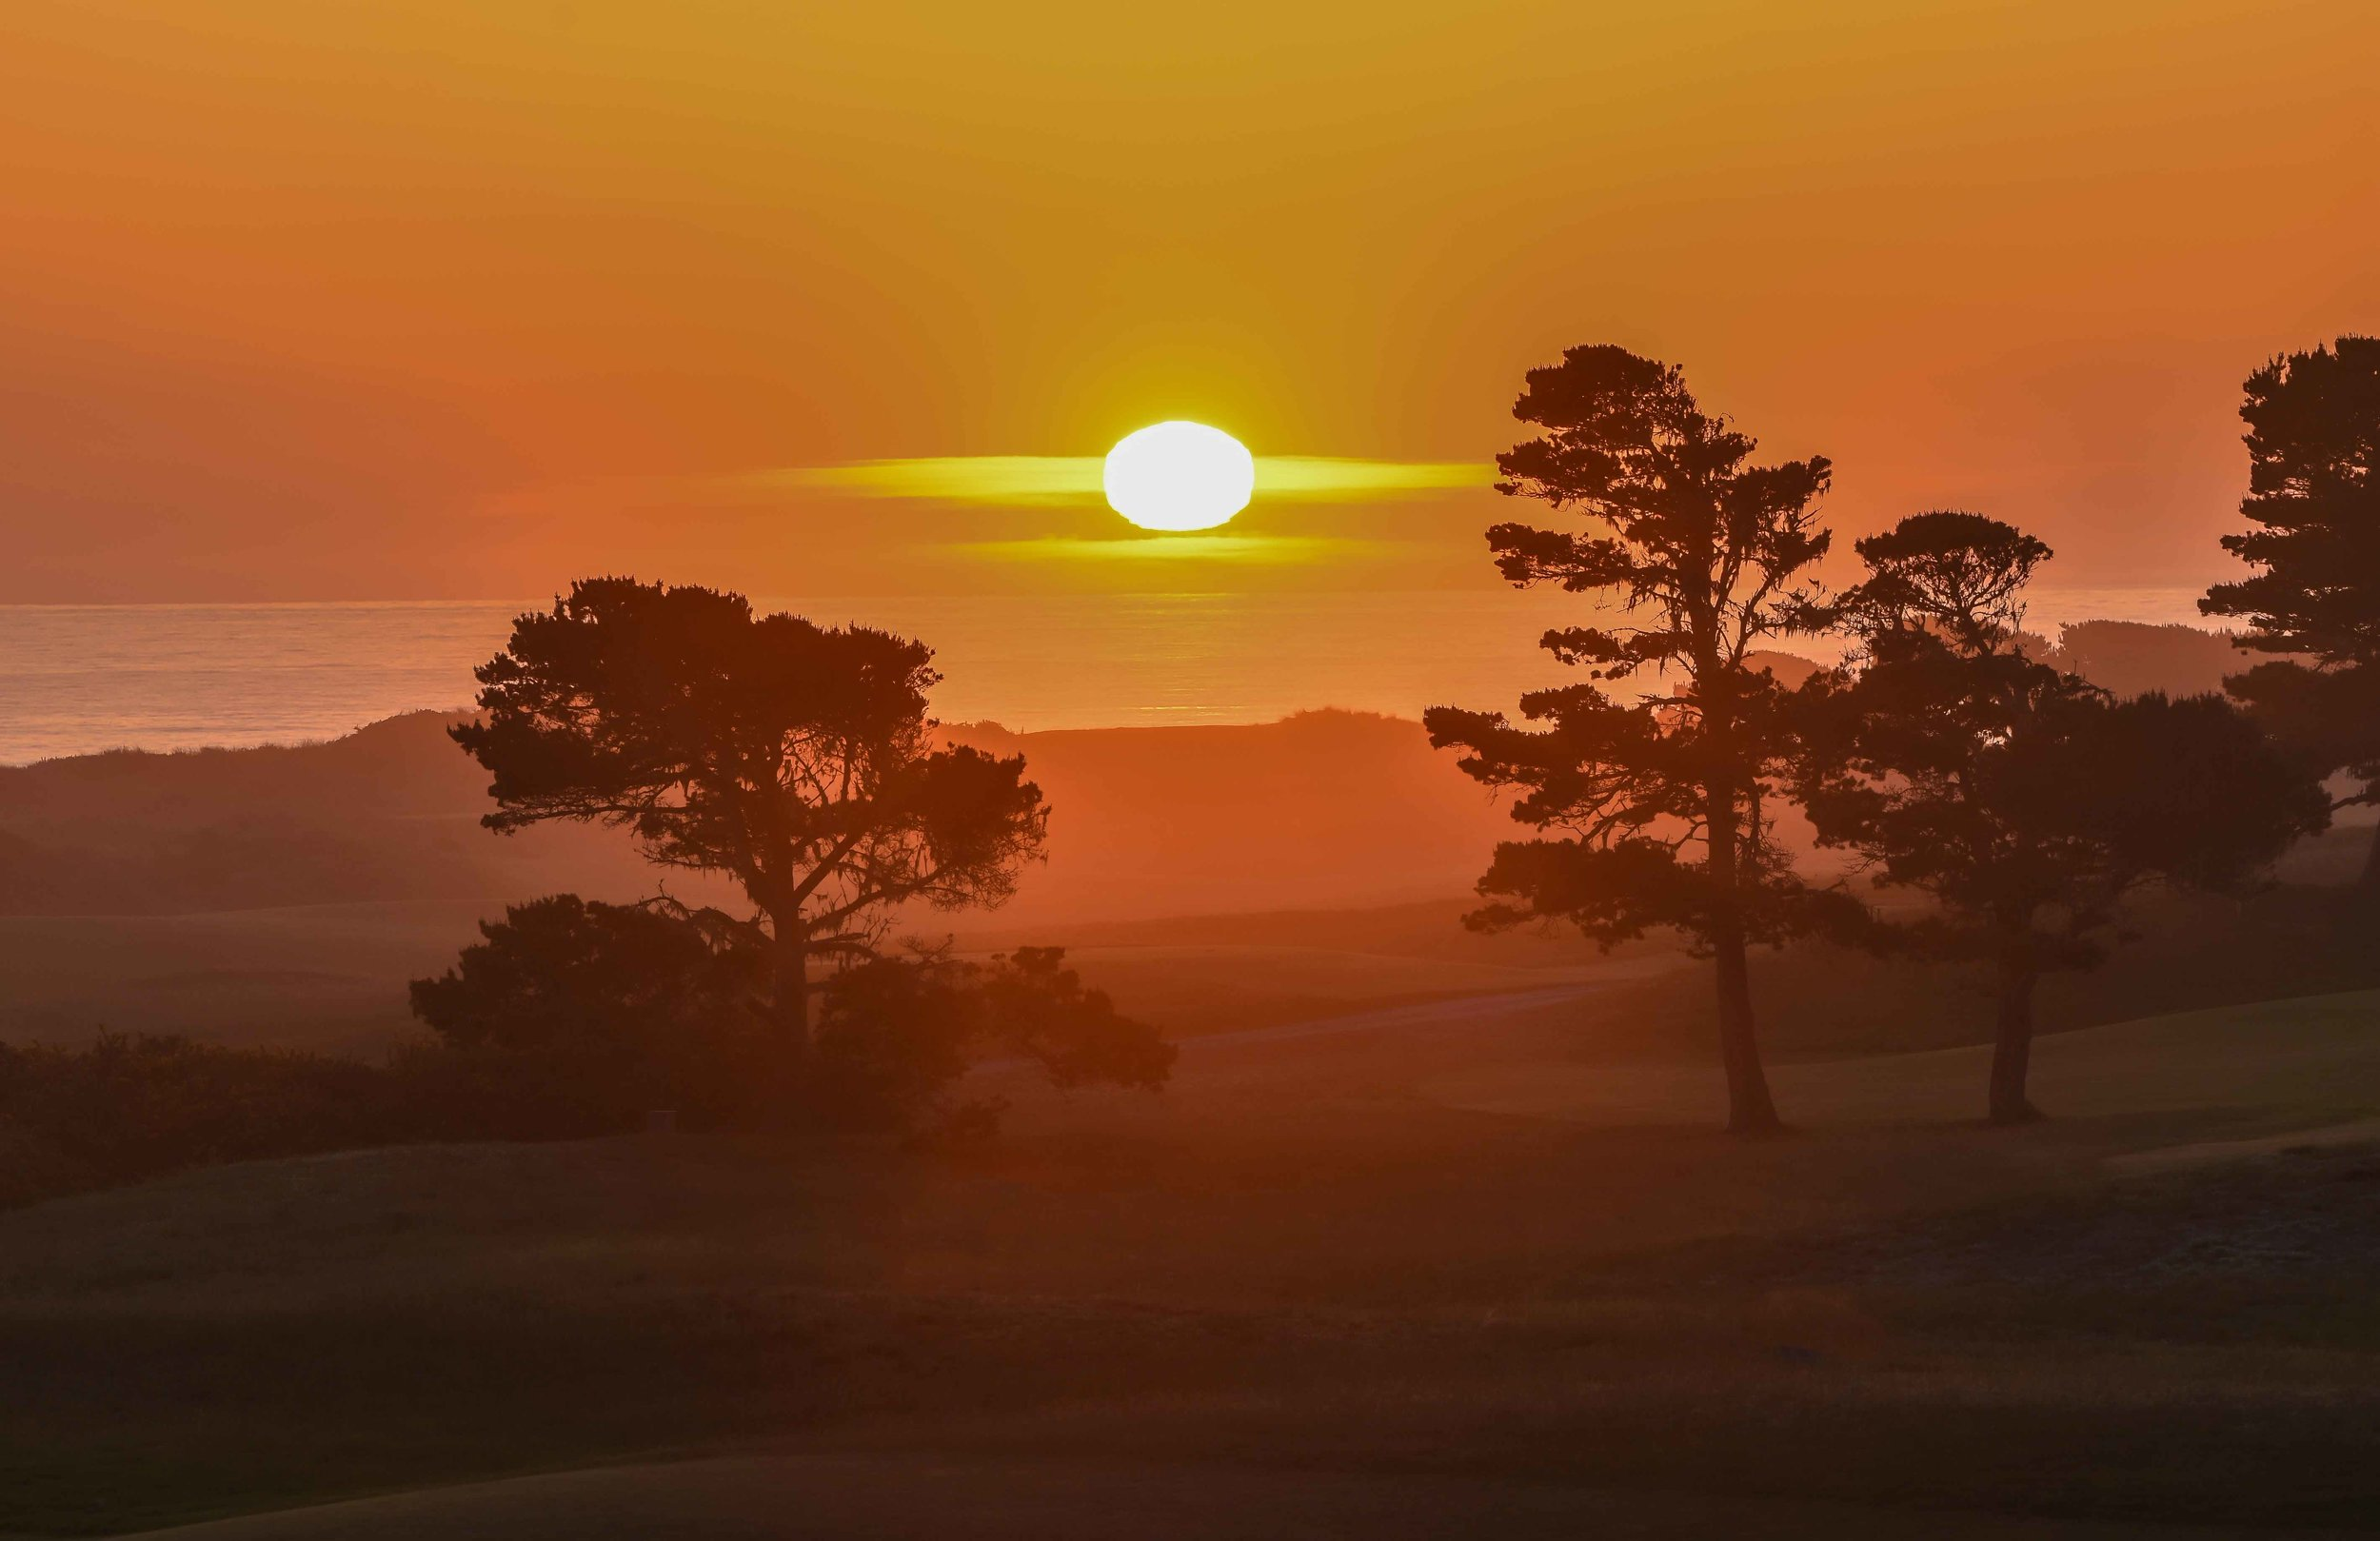 There a few things as satisfying as the sun setting over Bandon Dunes.